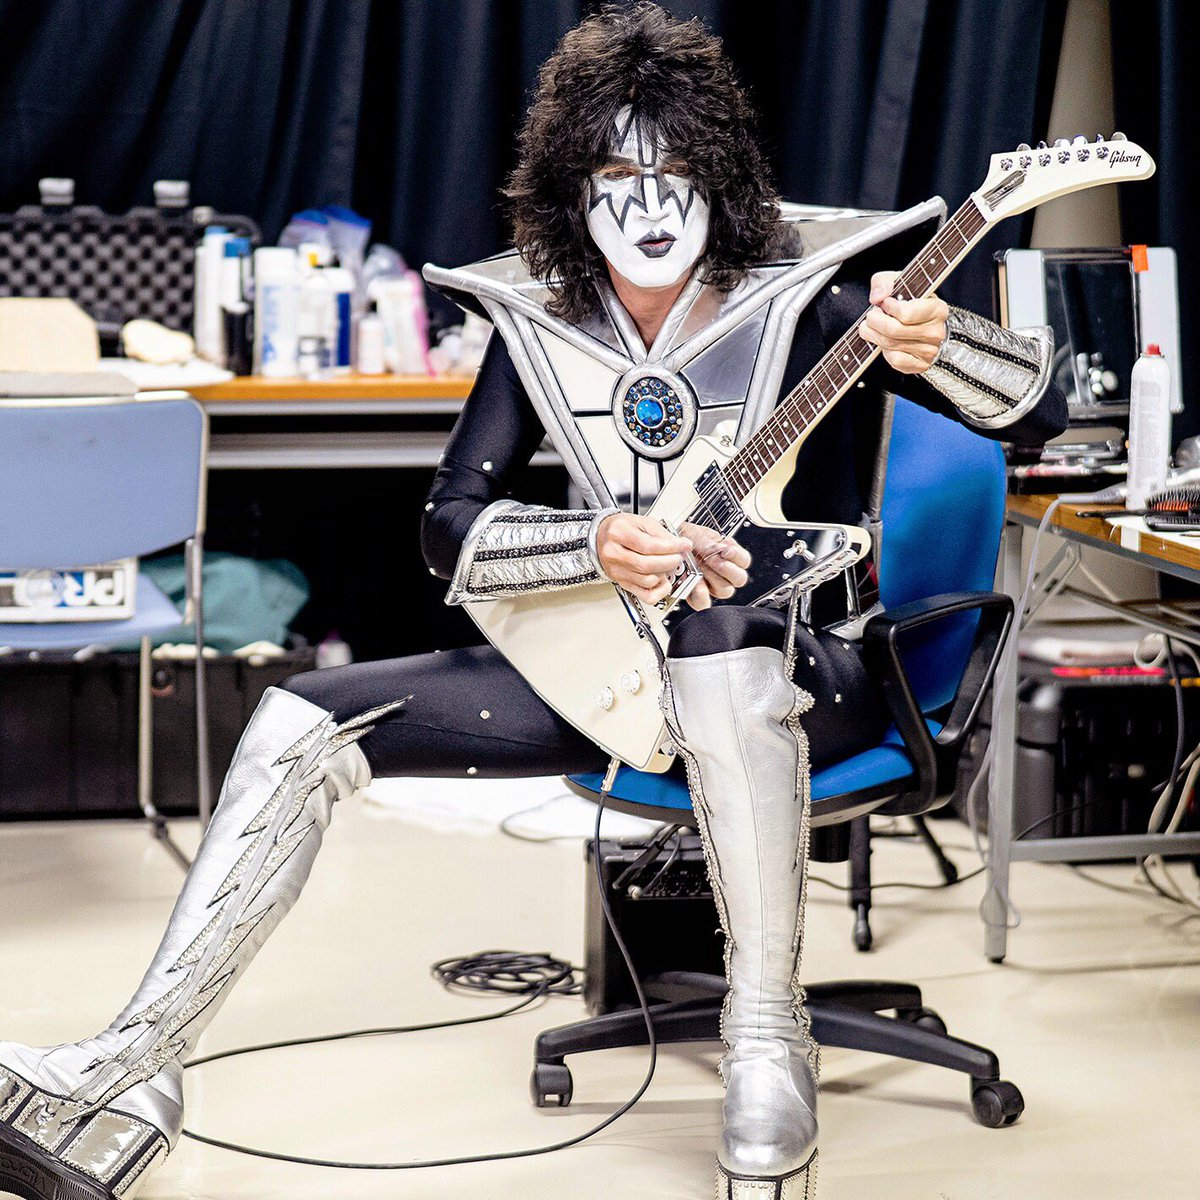 Five minutes to showtime in #Morioka #kissendoftheroadtour @rosshalfin photo